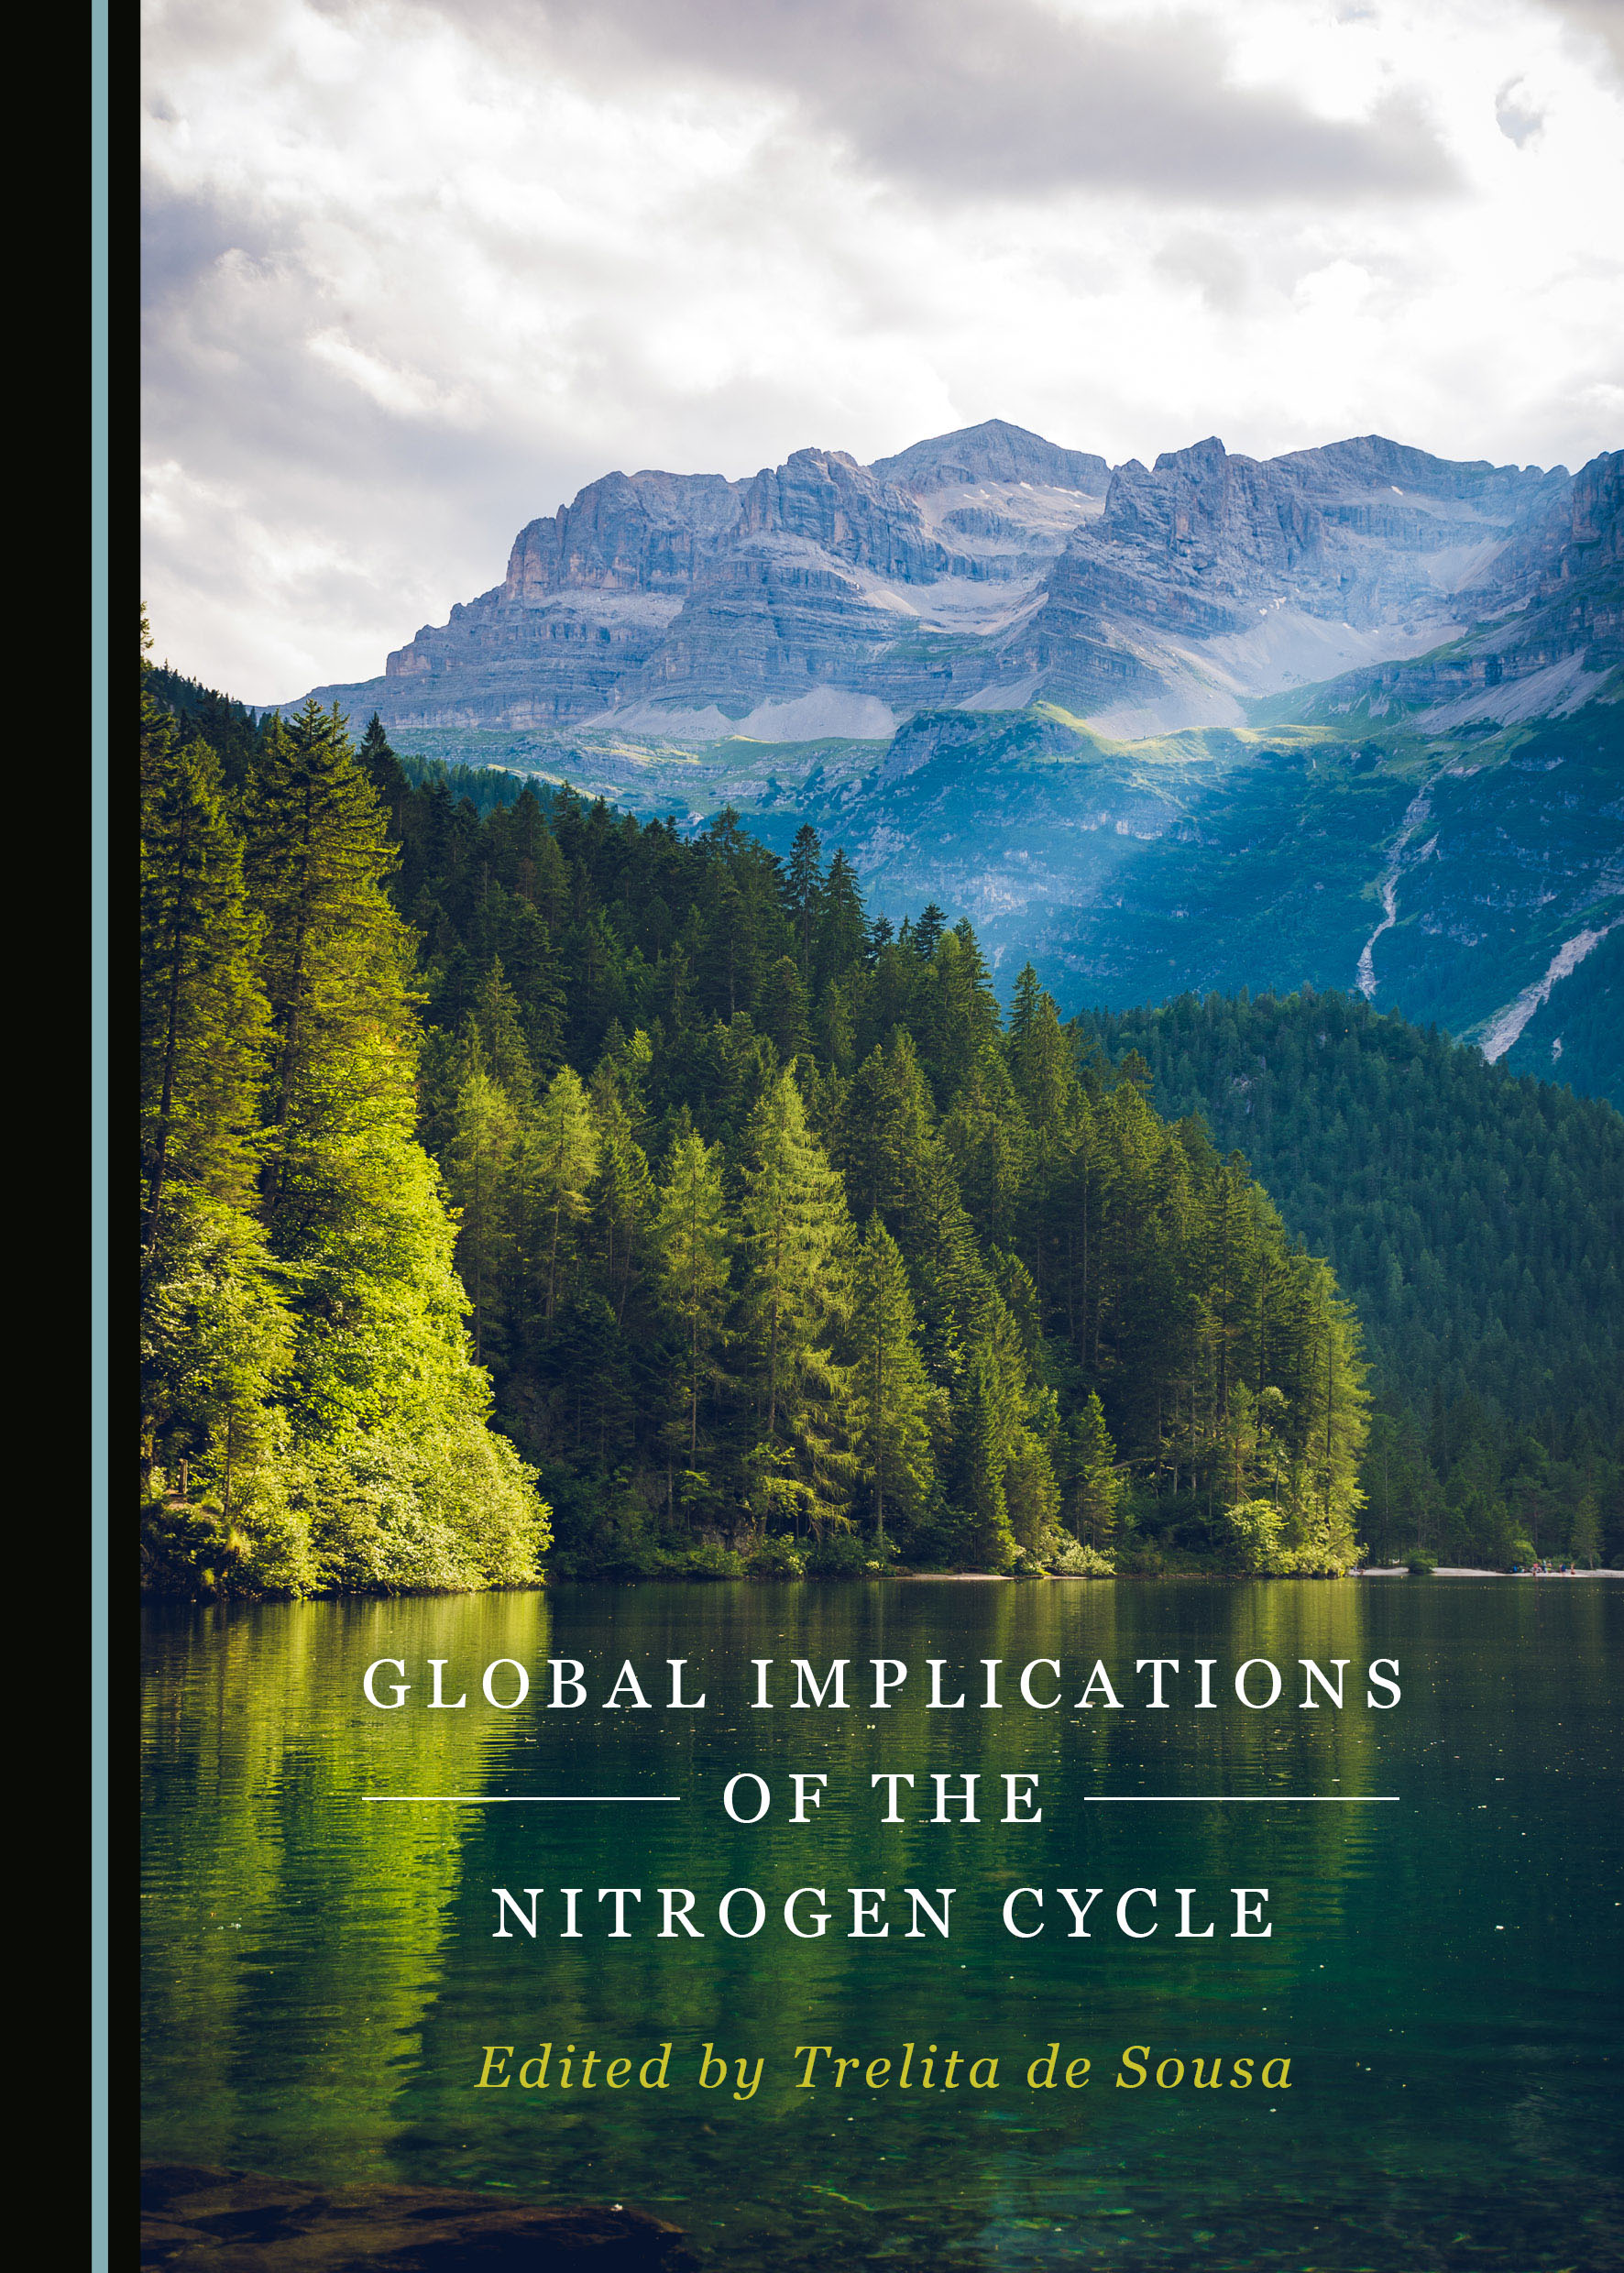 Global Implications of the Nitrogen Cycle